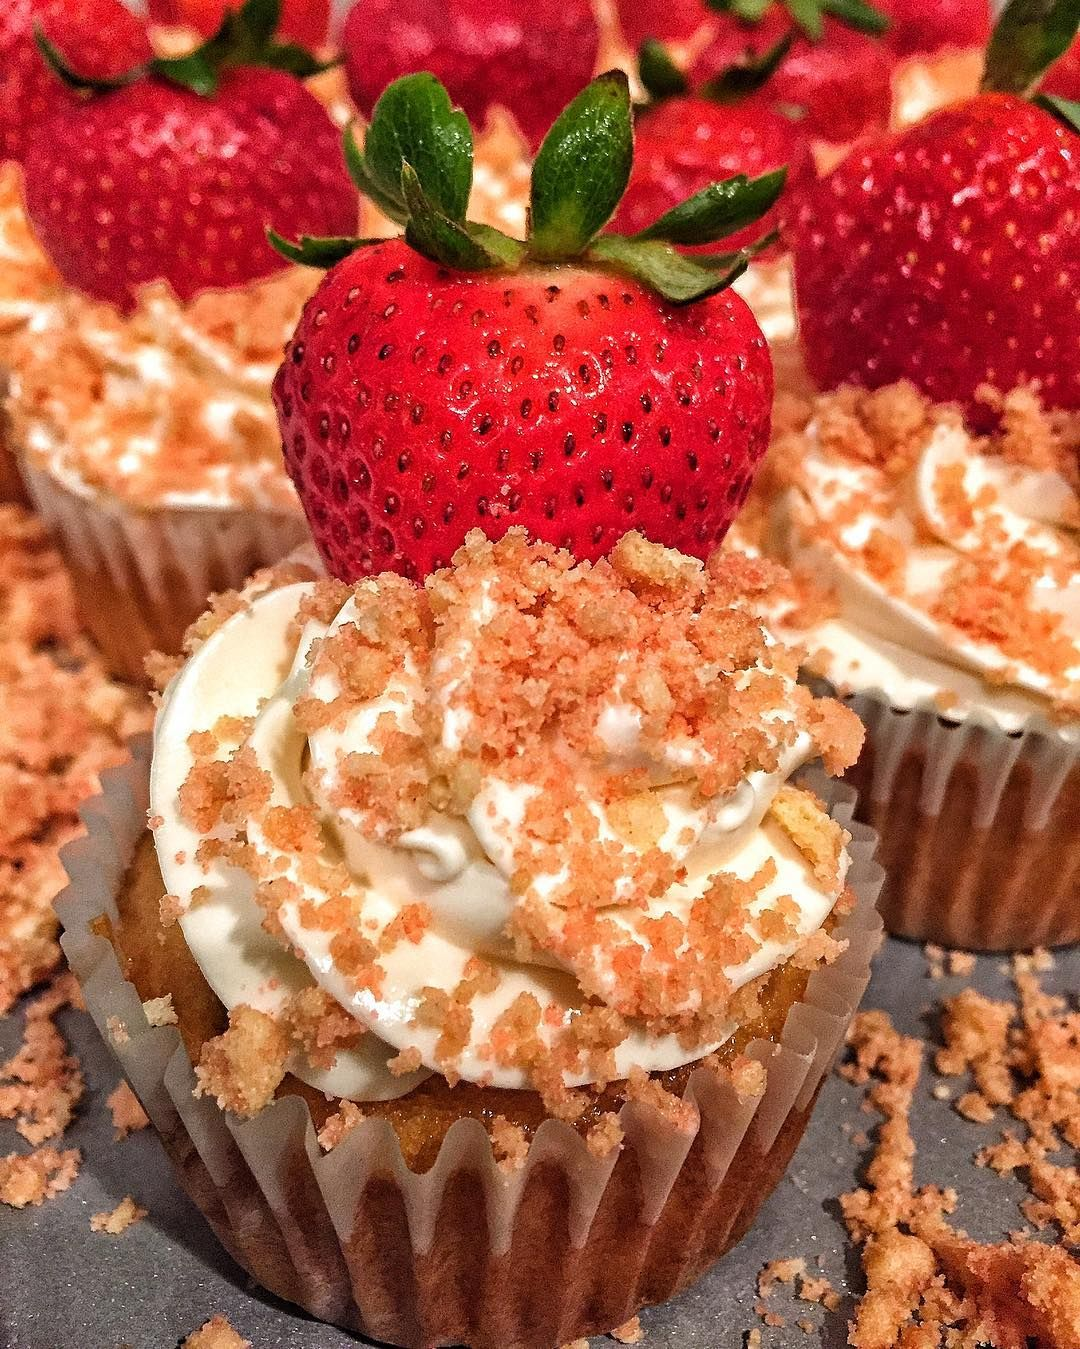 strawberry cheesecake cupcakestried a new dessert this past weekend forhellip